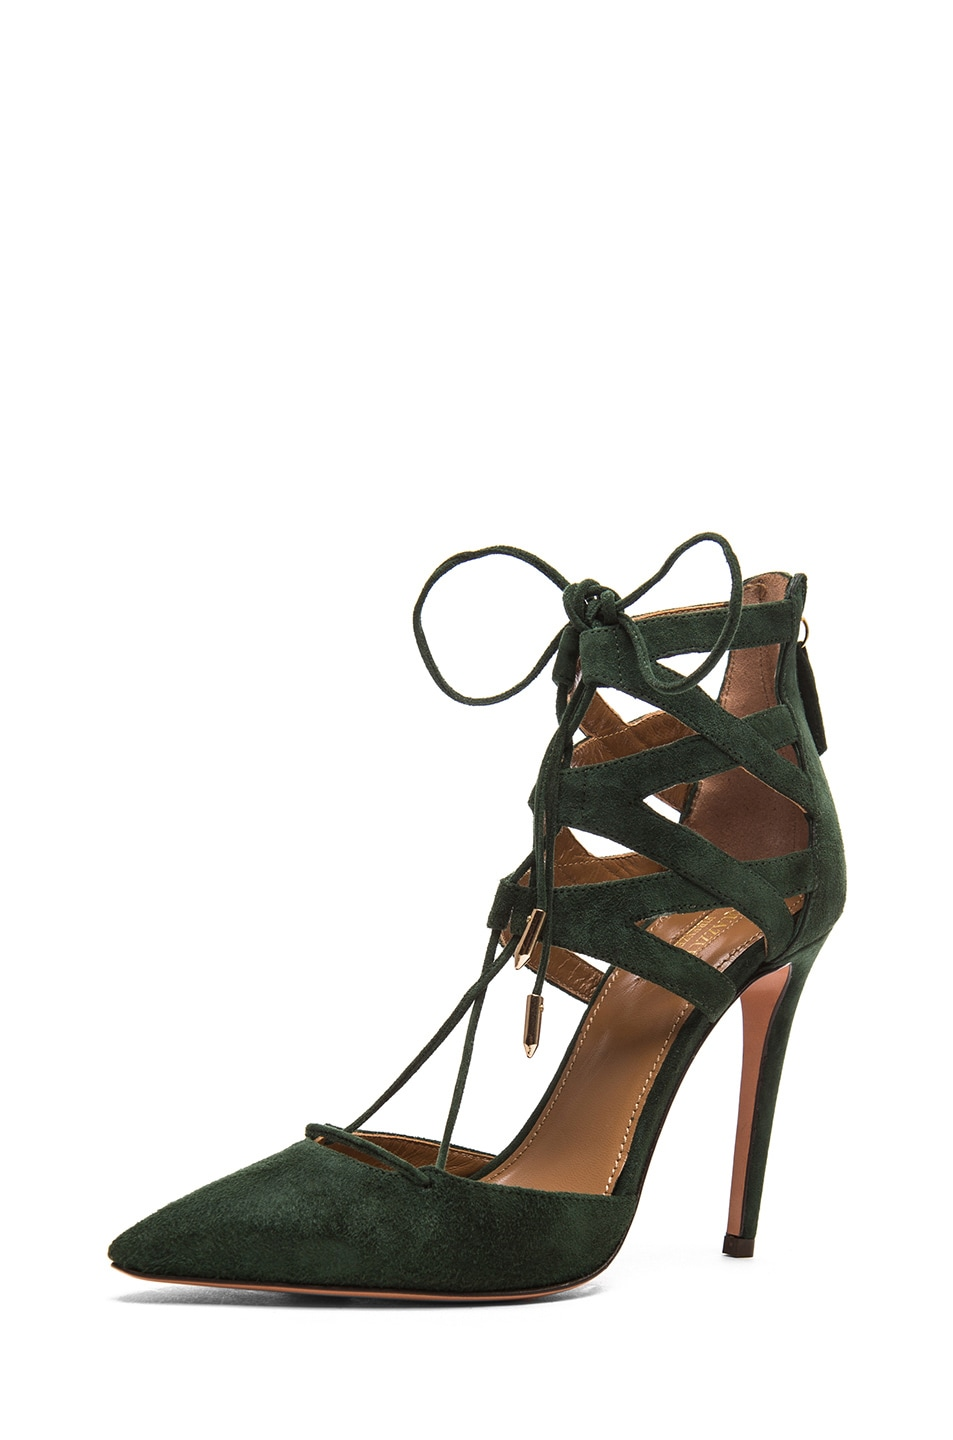 Image 2 of Aquazzura Belgravia Suede Lace Up Pumps in Forest Green